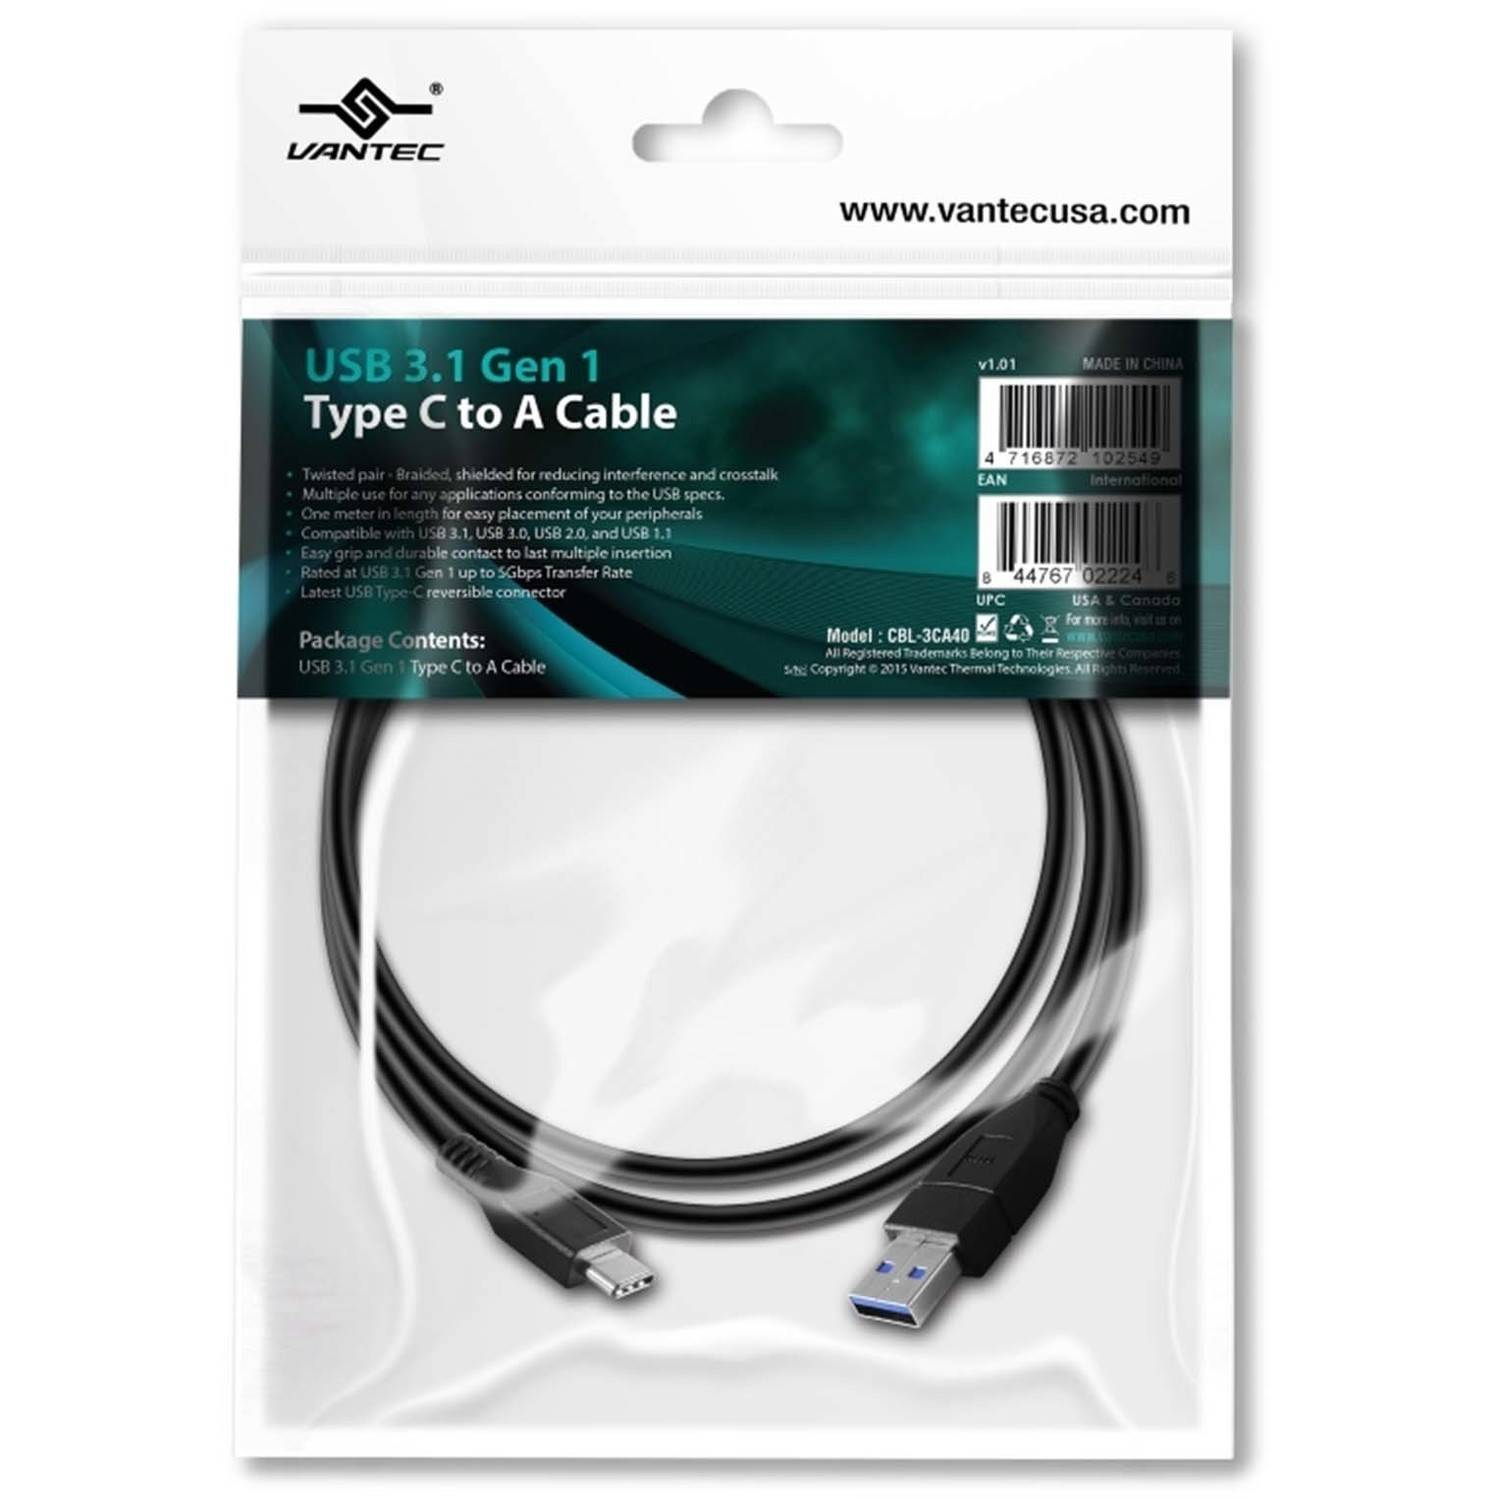 Vantec CBL-3CA40 USB 3.1 Type C to USB-A Cable, Black